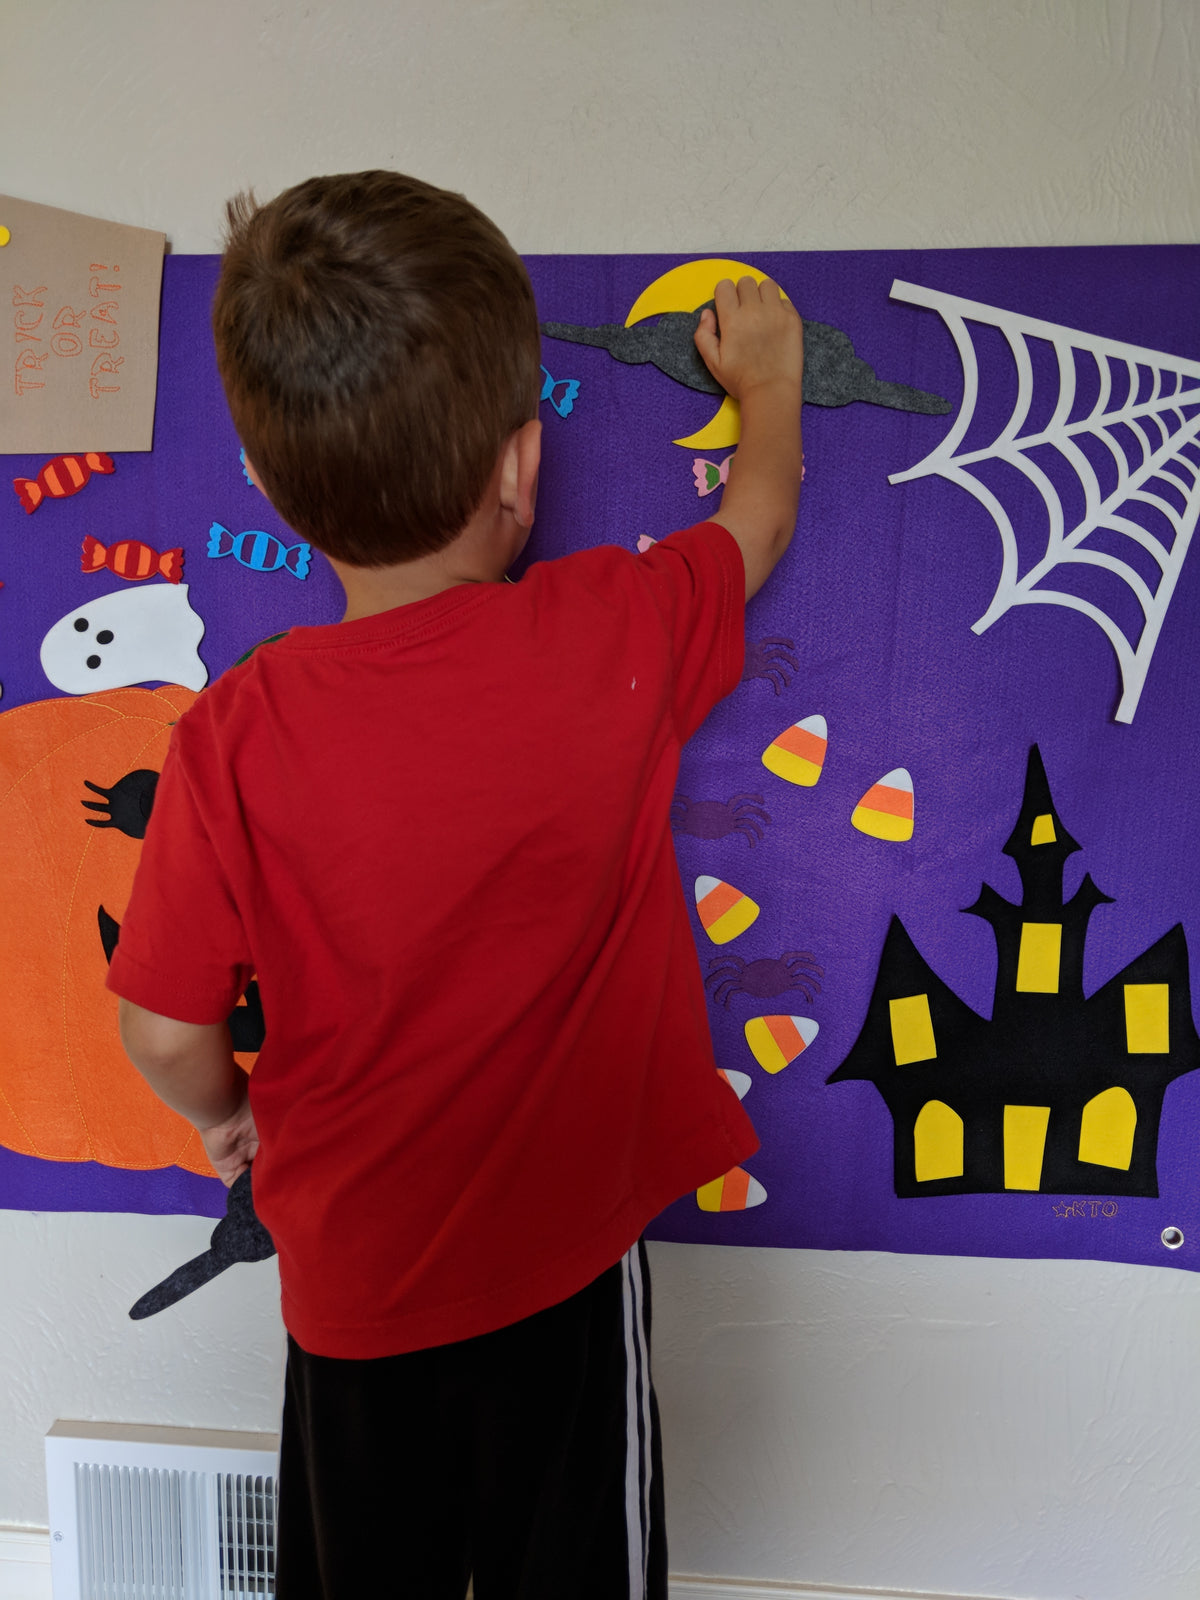 Halloween Jack O'Lantern Pumpkin Interactive Wall Felt - Preschool Educational Supply - KTOriginals